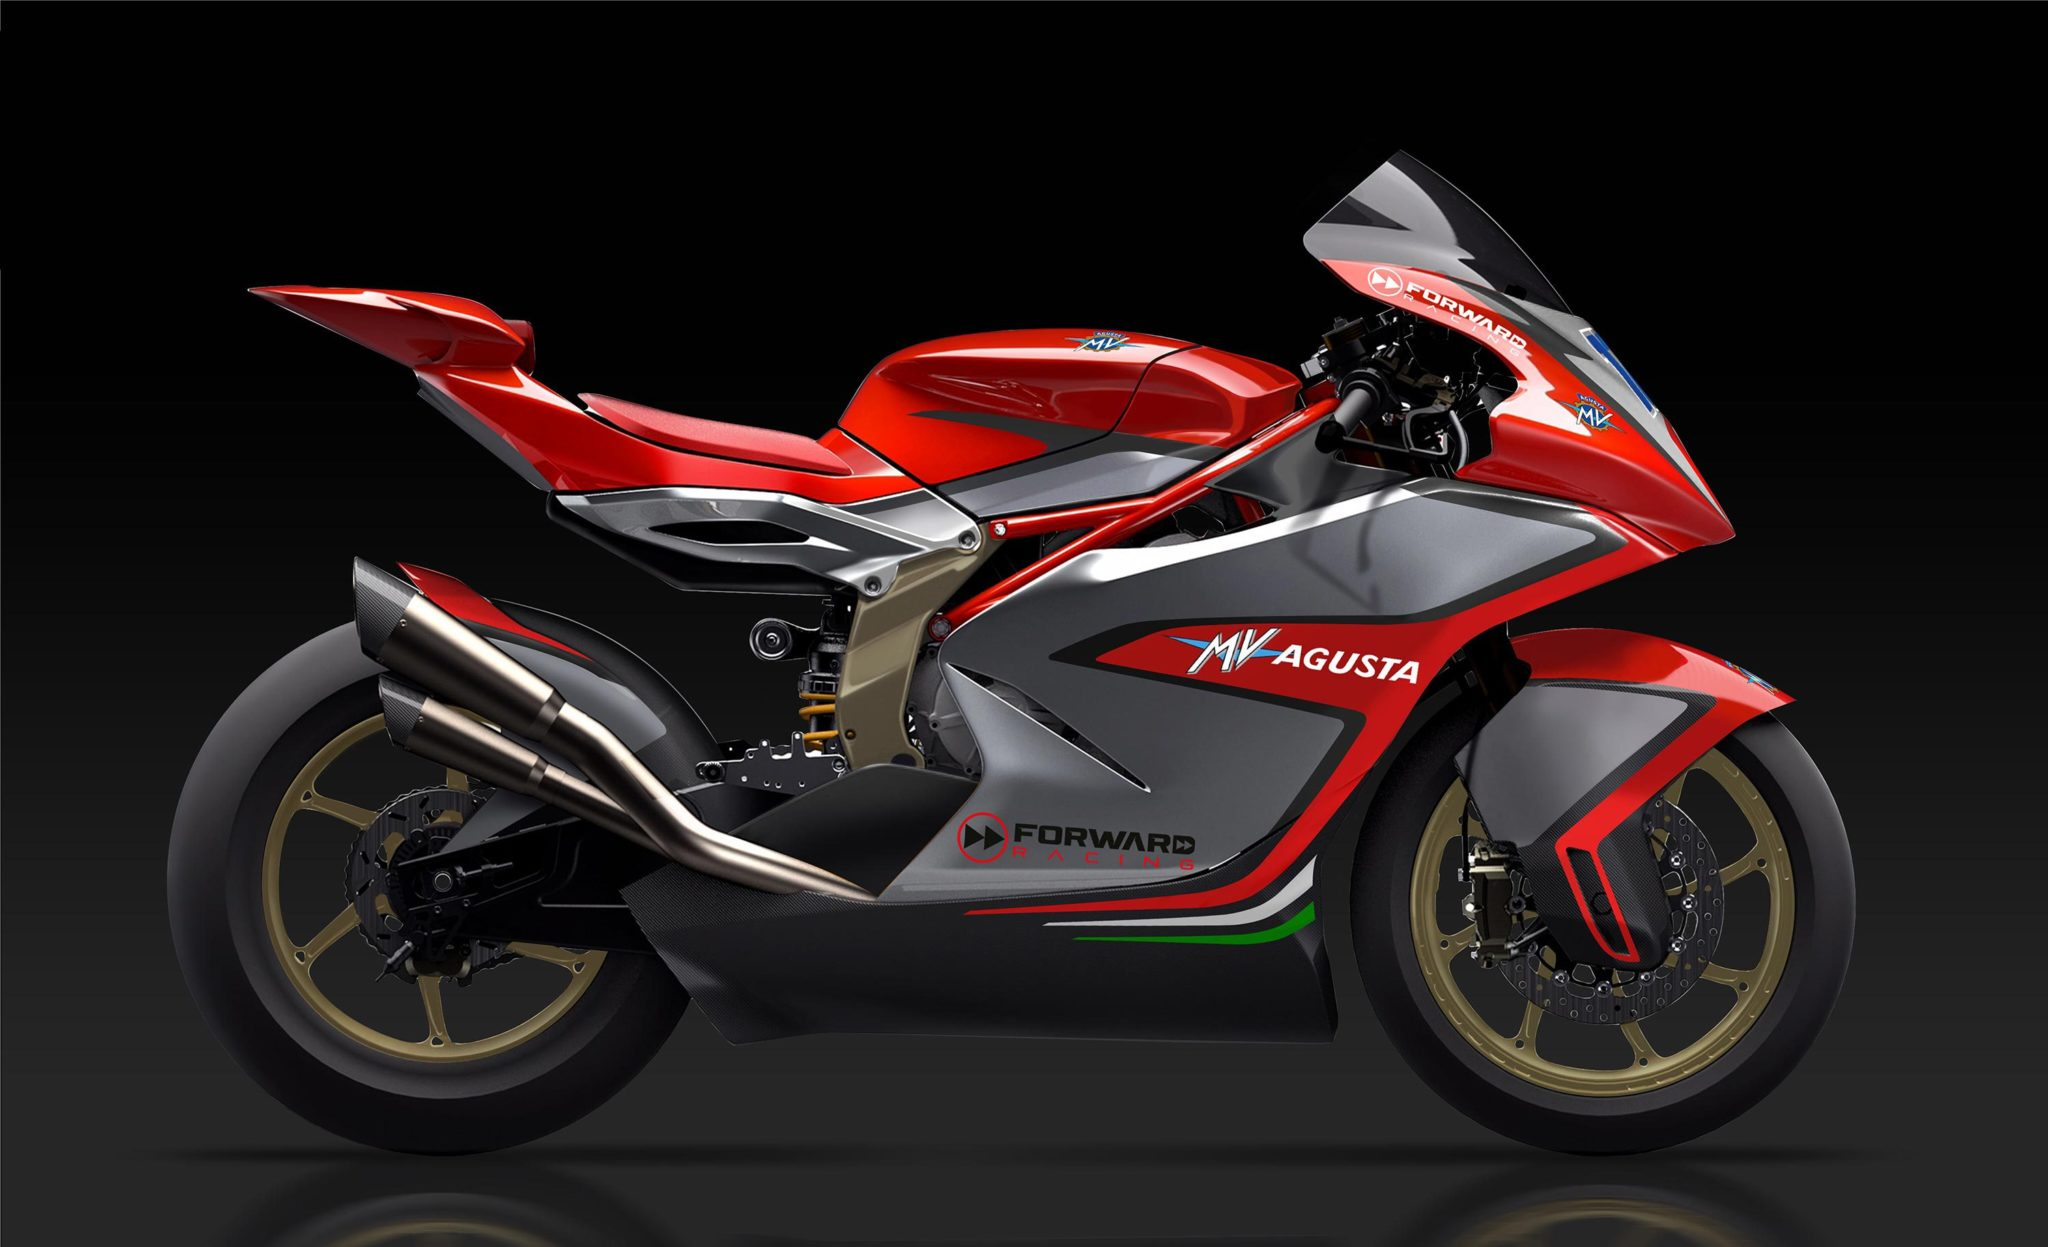 Moto2 – MV Agusta shows their new race bike... and it's stunning!